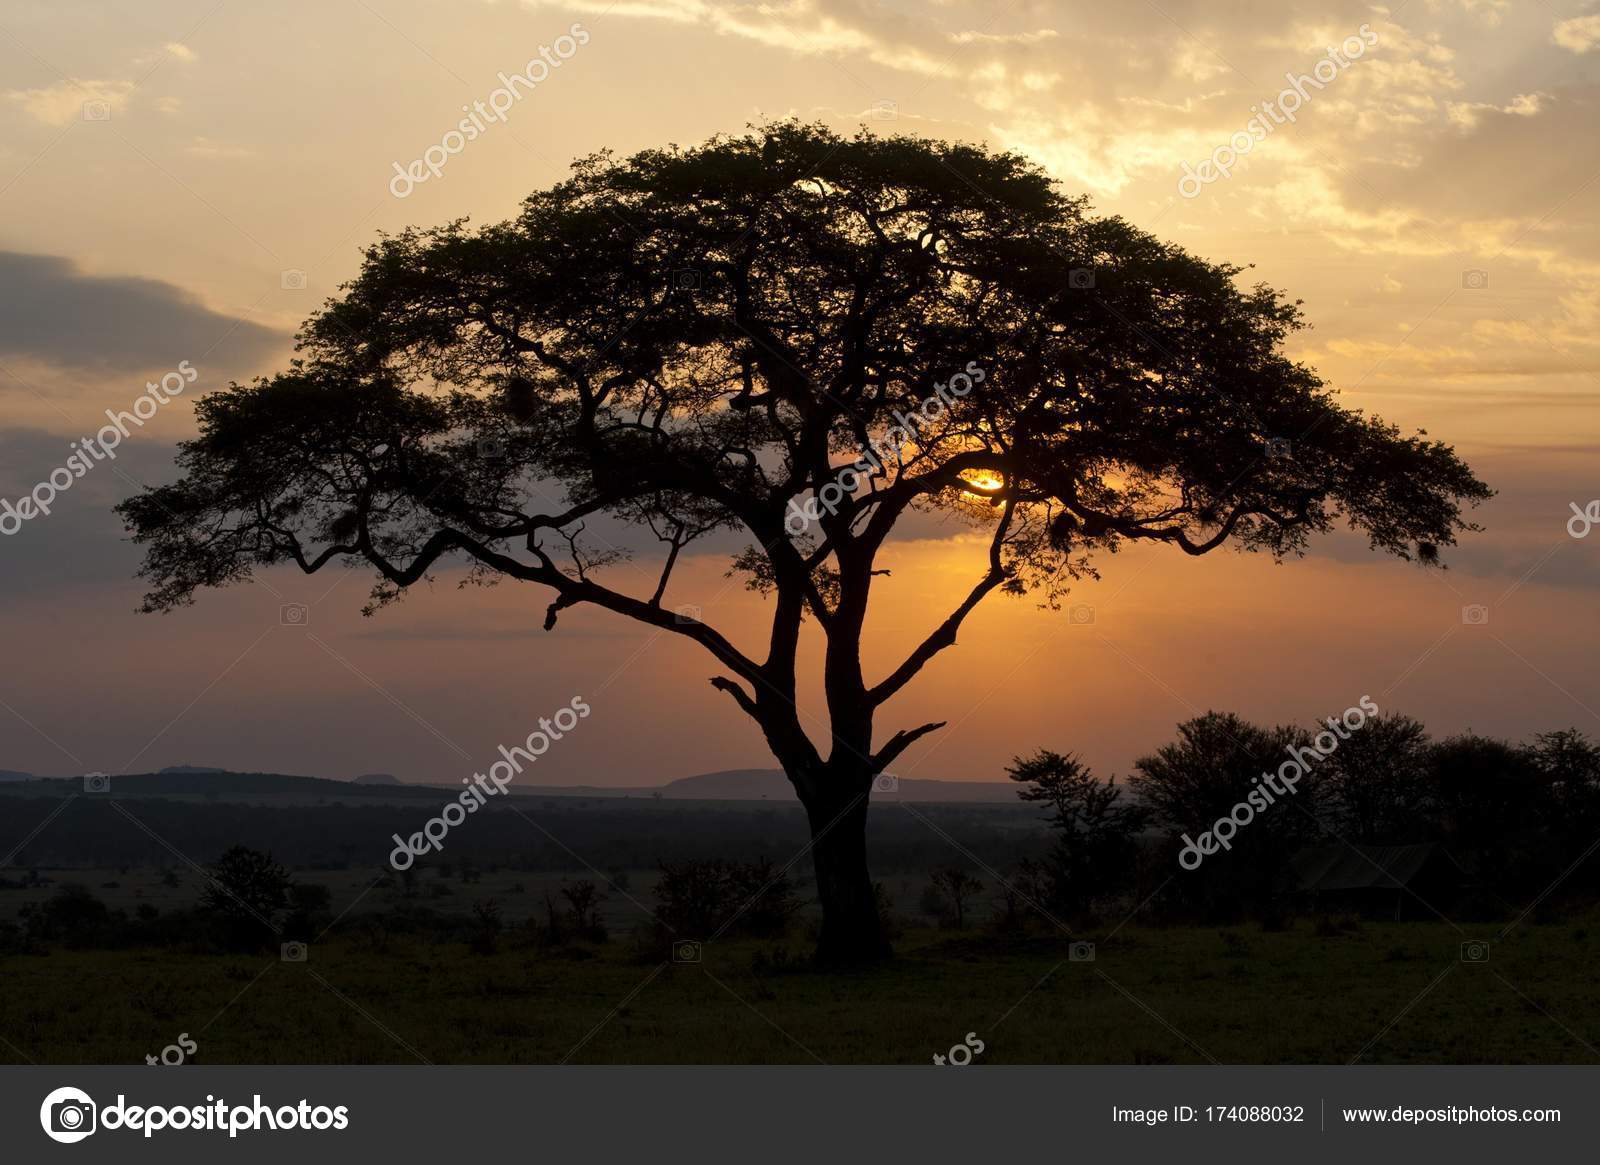 Umbrella Thorn Acacia Tree Stock Photo Imagebrokermicrostock